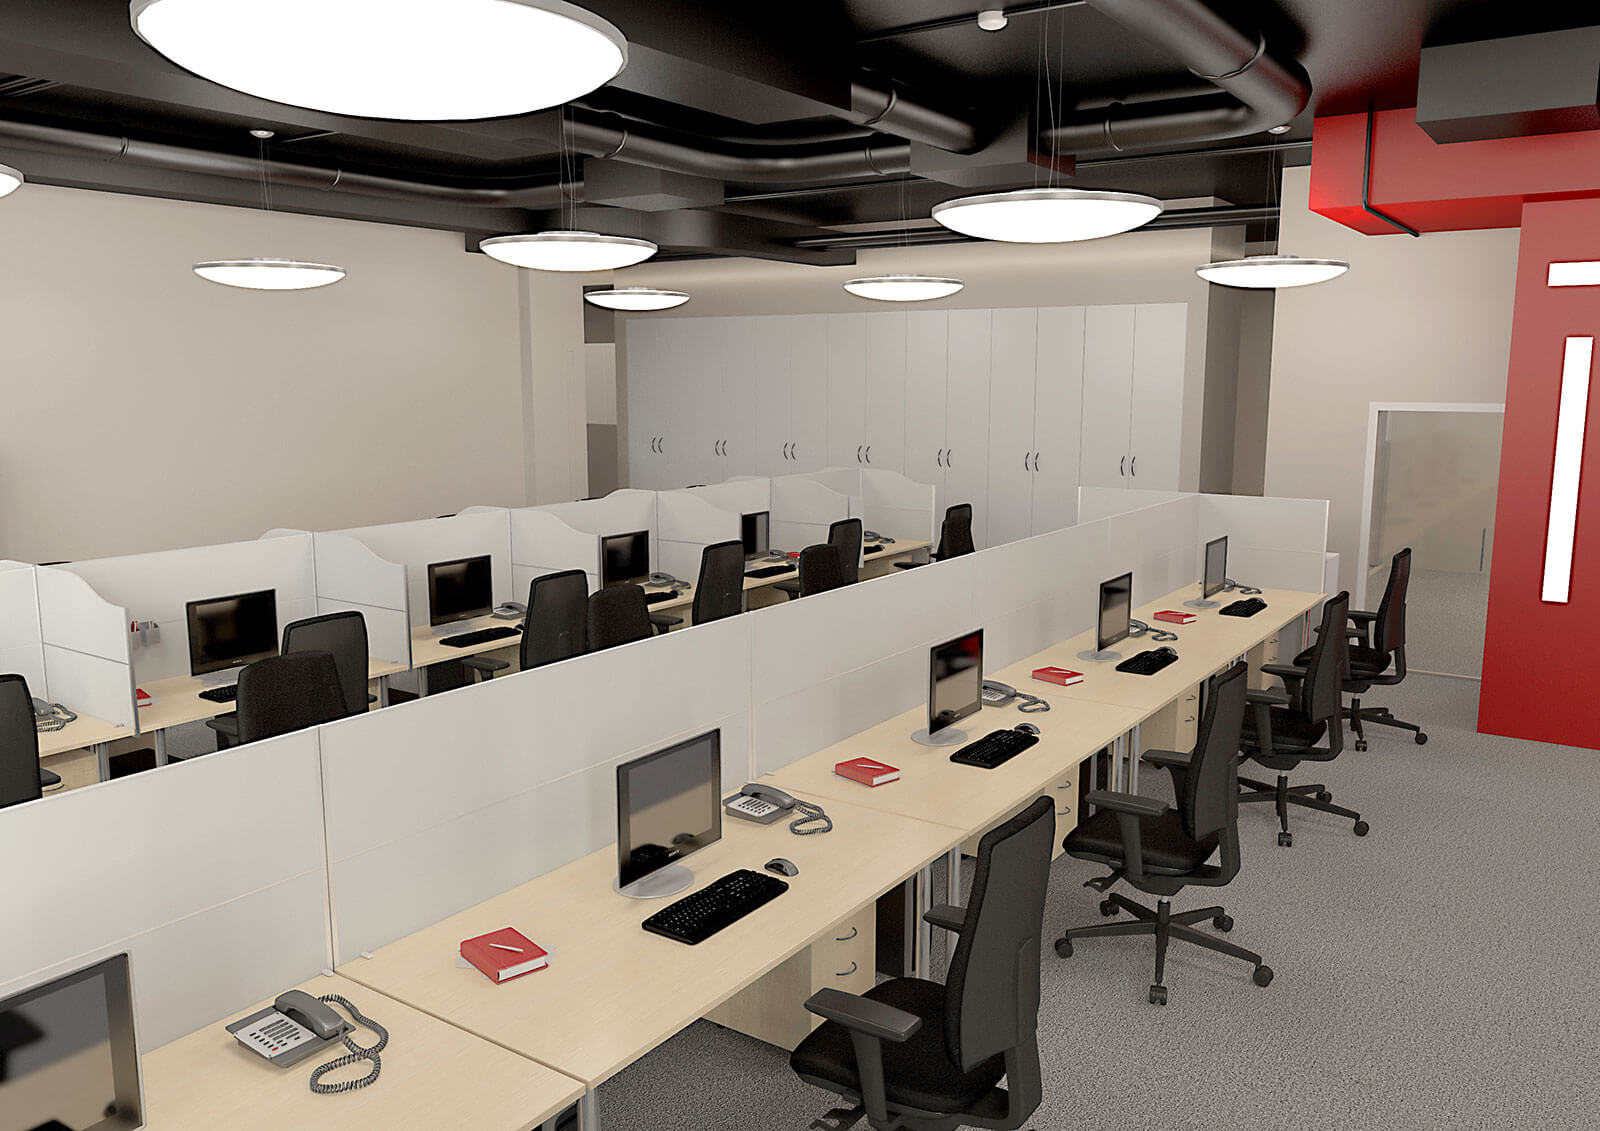 3D visualisation of the office, 3d office planning, commercial 3d visualization, London, UK.